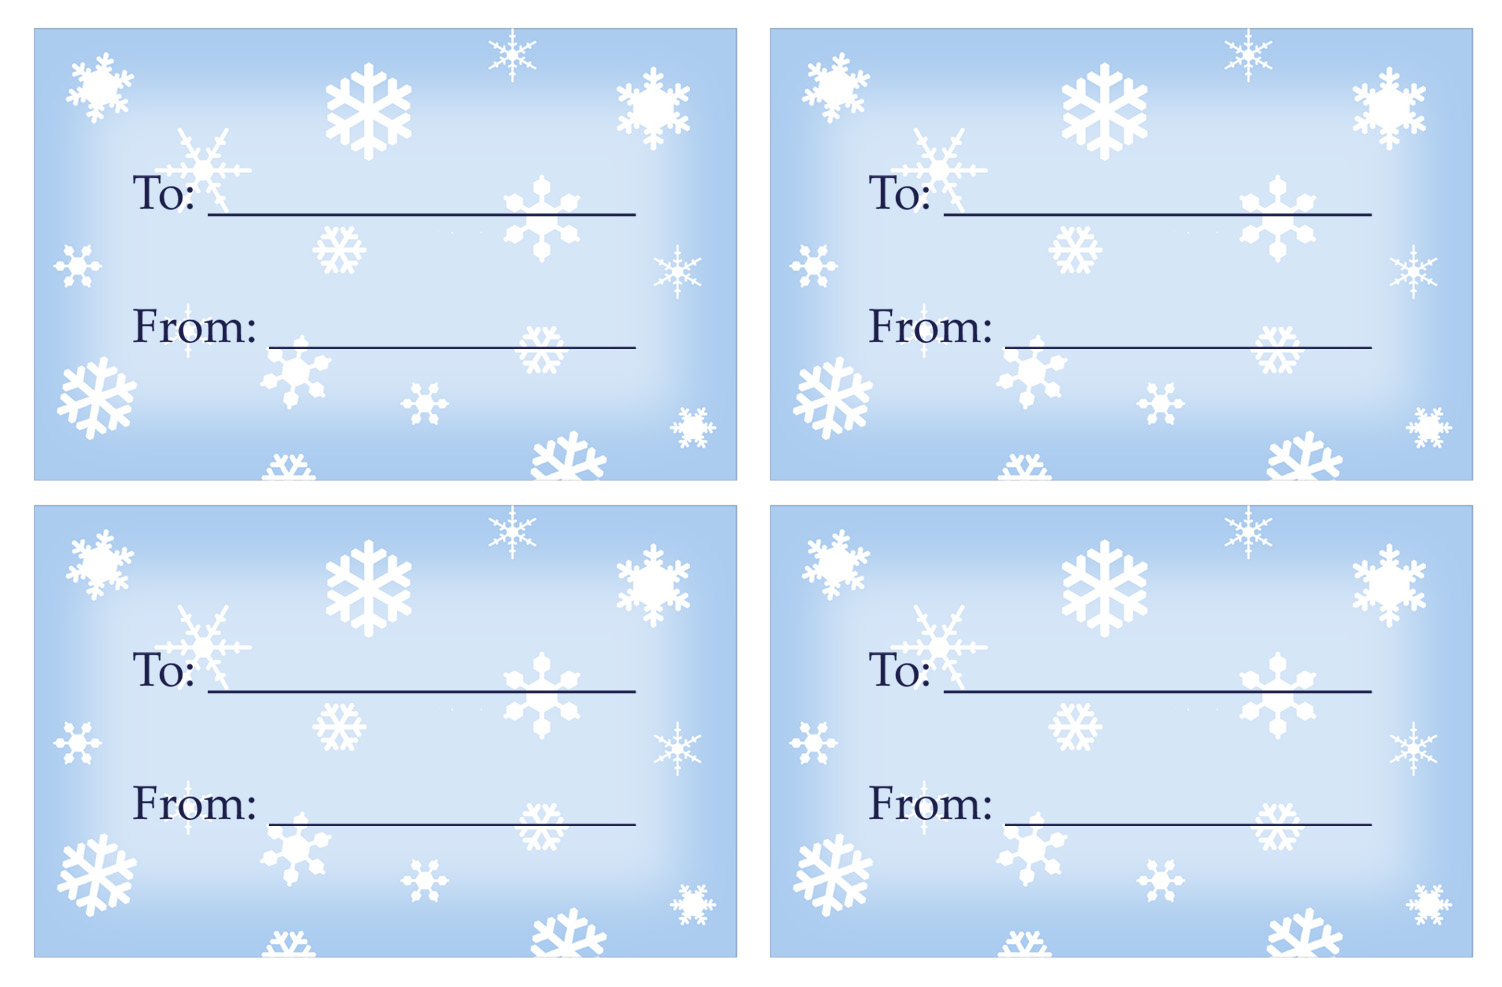 40 Unique Printable Christmas Gift Tags | Kittybabylove - Free Printable Gift Tags Templates